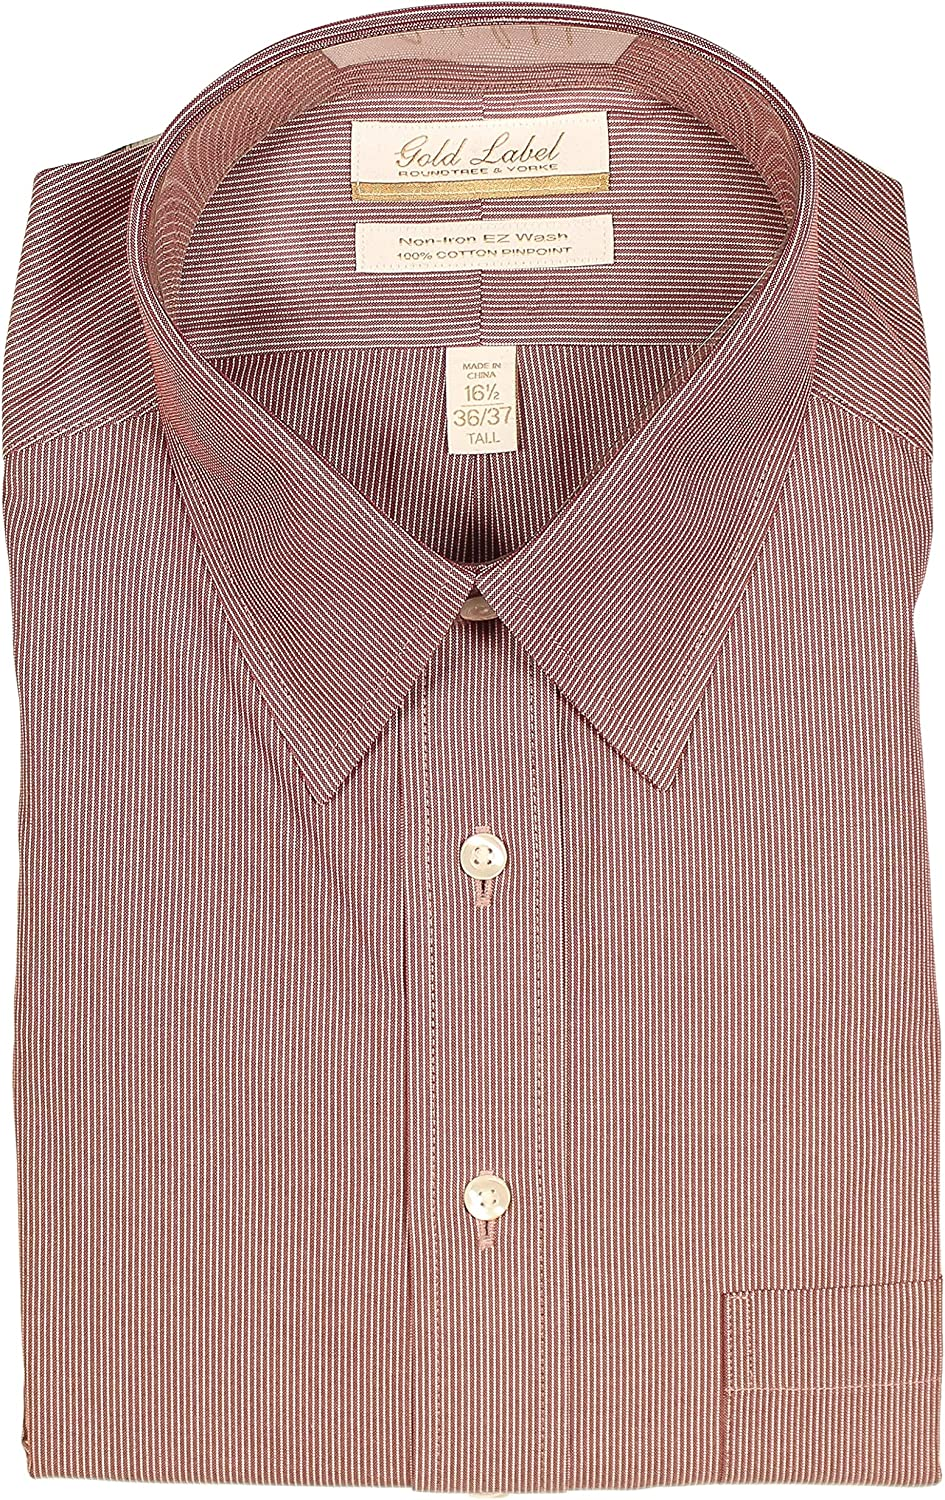 Gold Label Men's Virginia Spasm price Beach Mall Big and Wrinkle Non-Iron Resistant Tall Easy-Ca